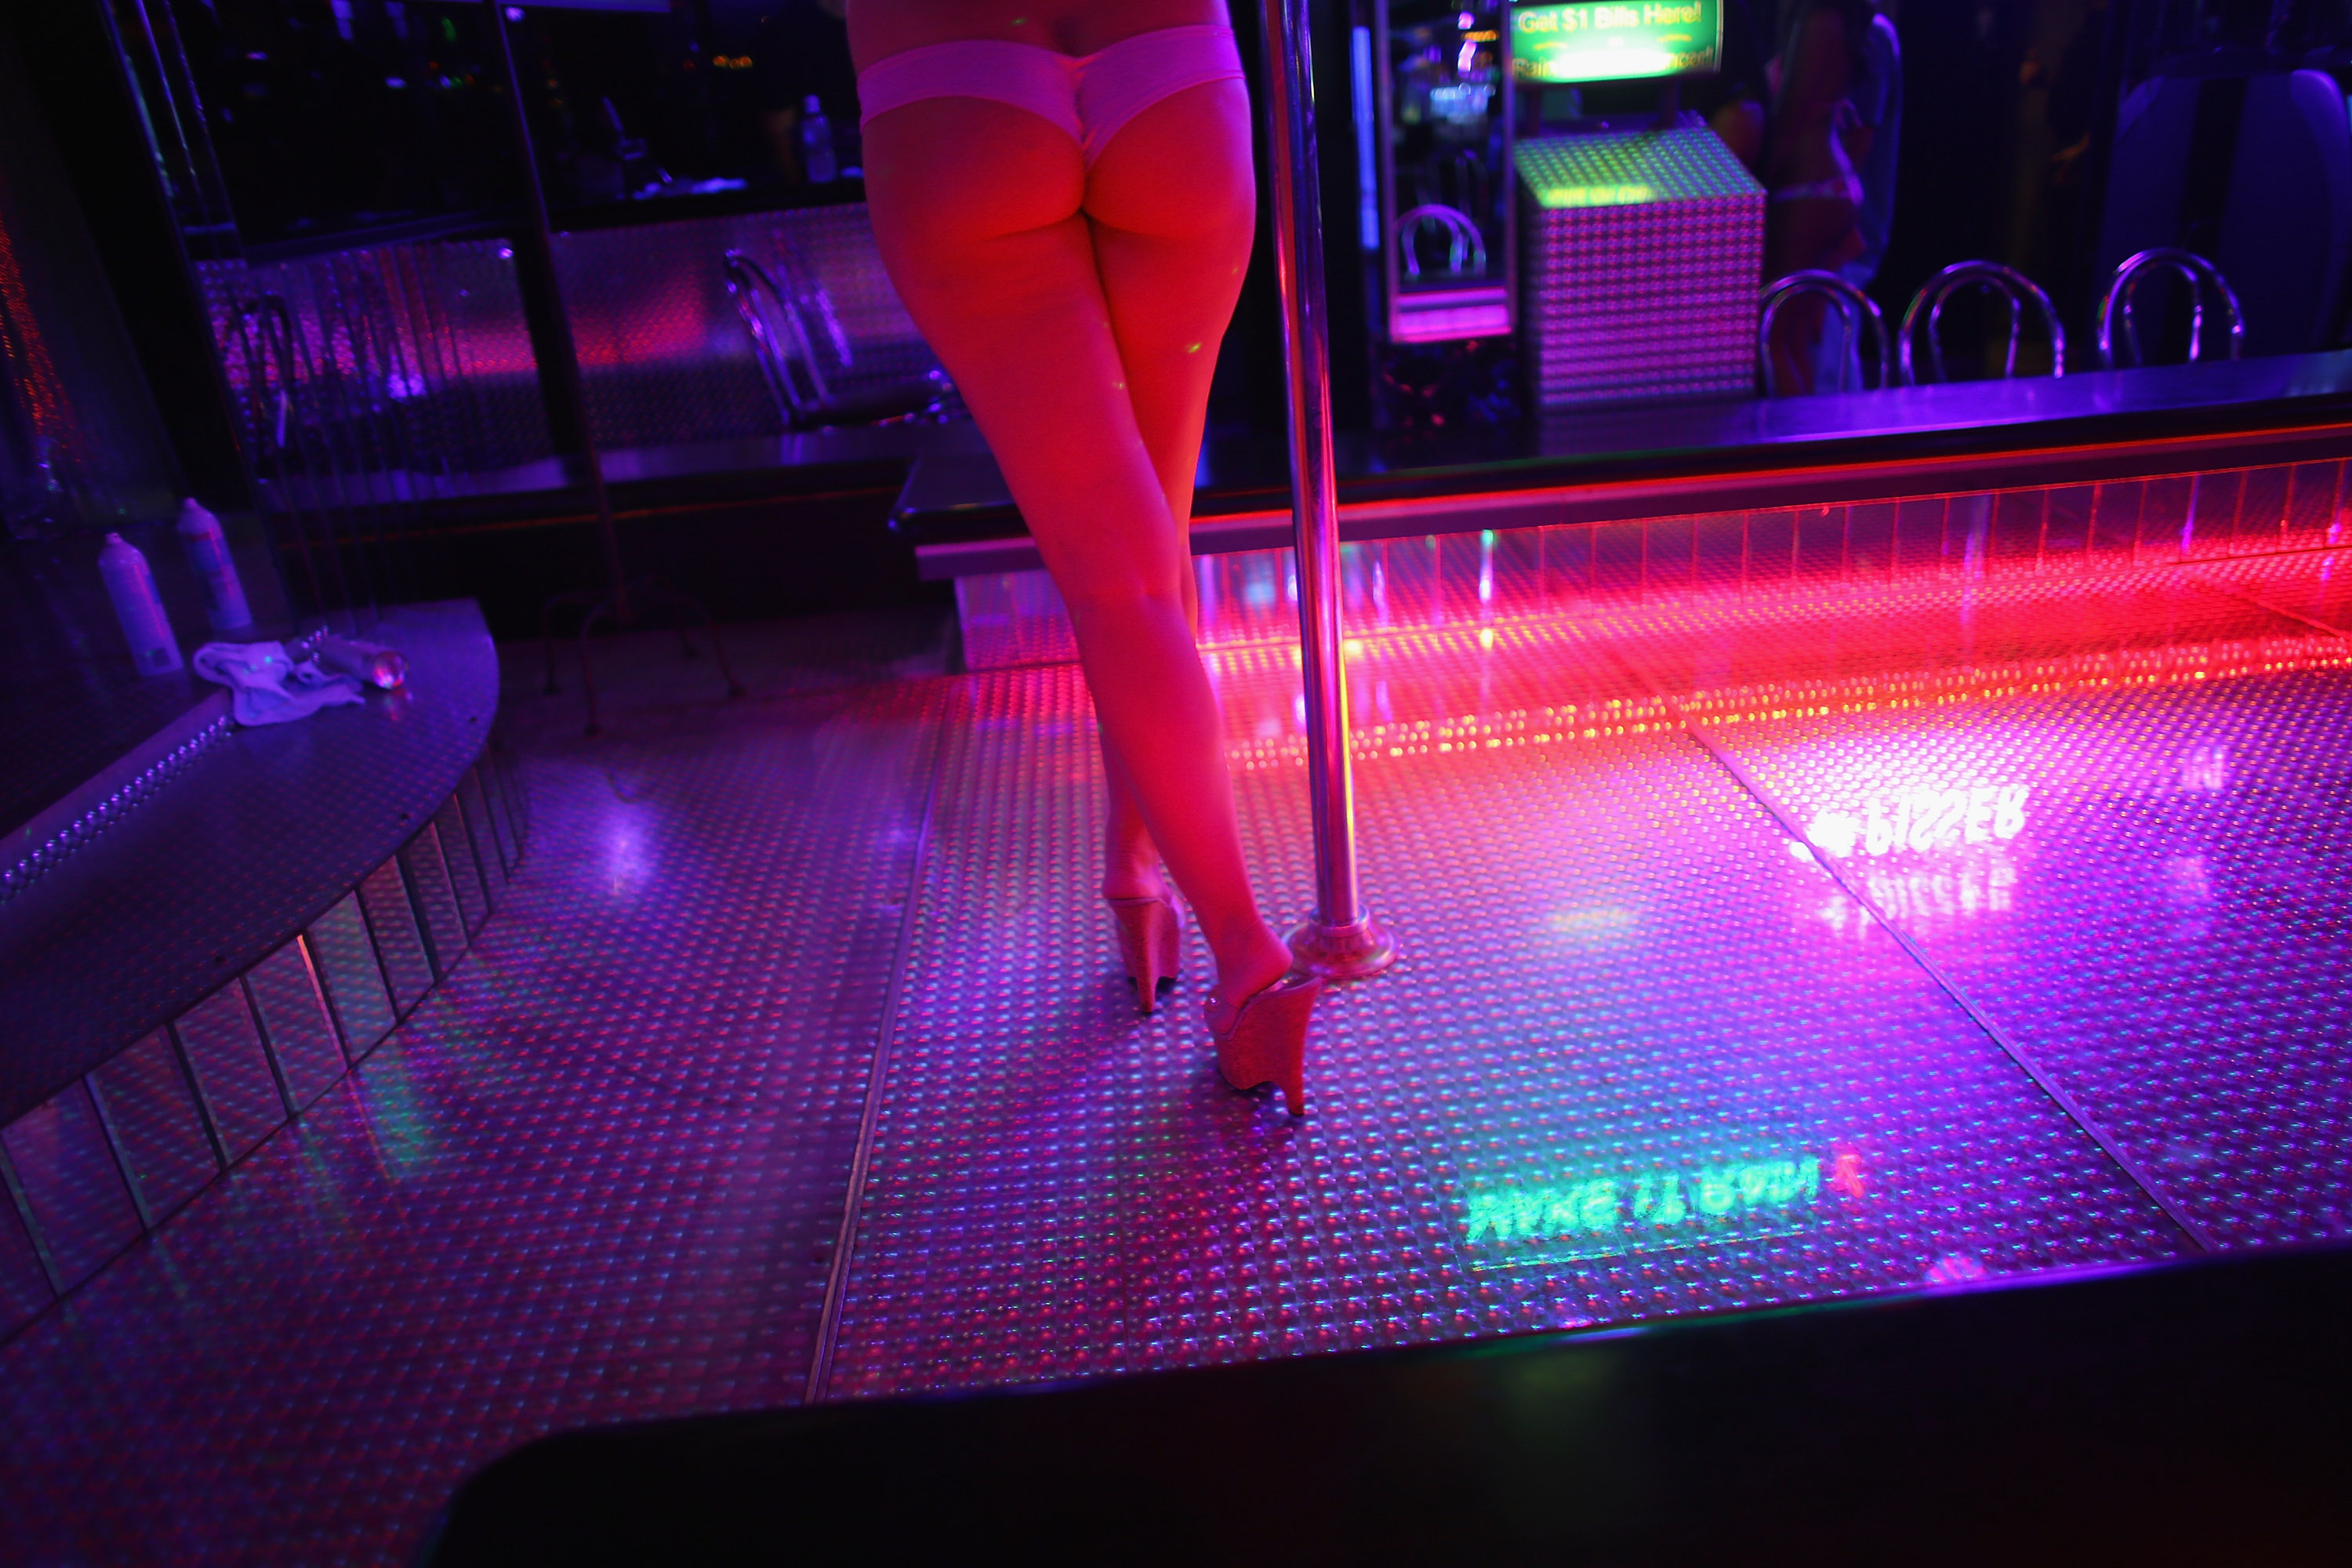 Stripper Reveals The Tricks She Used To Get Men To Blow Their Cash GettyImages 150743836